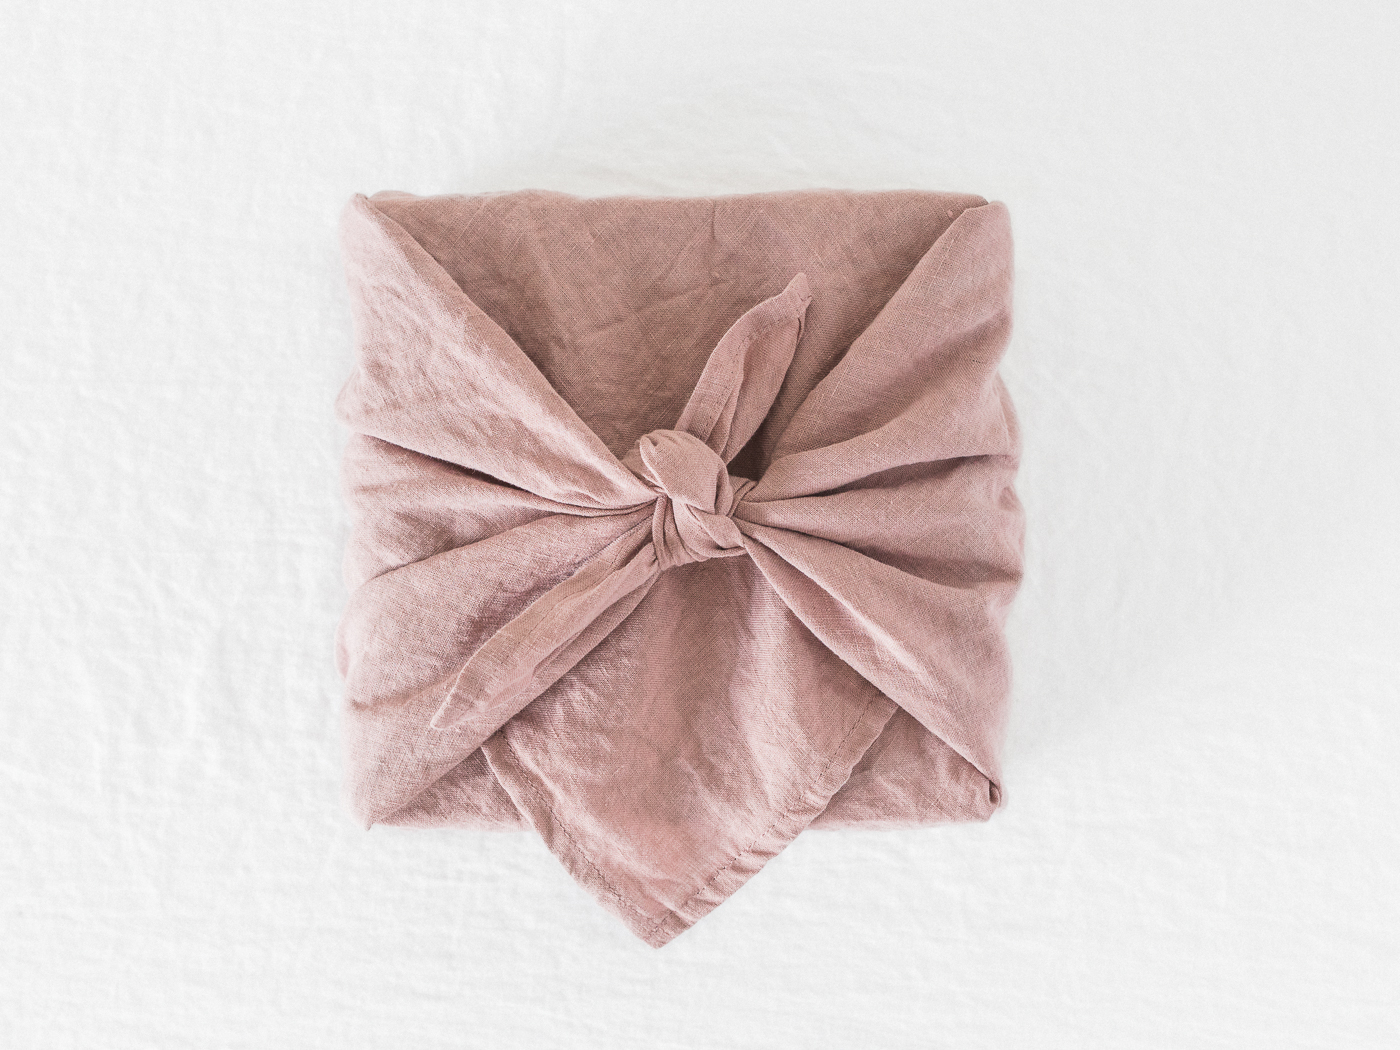 Furoshiki - Sustainable Wrapping Paper - Plastic Free Gift Wrapping - Eco-Friendly Gift Wrap